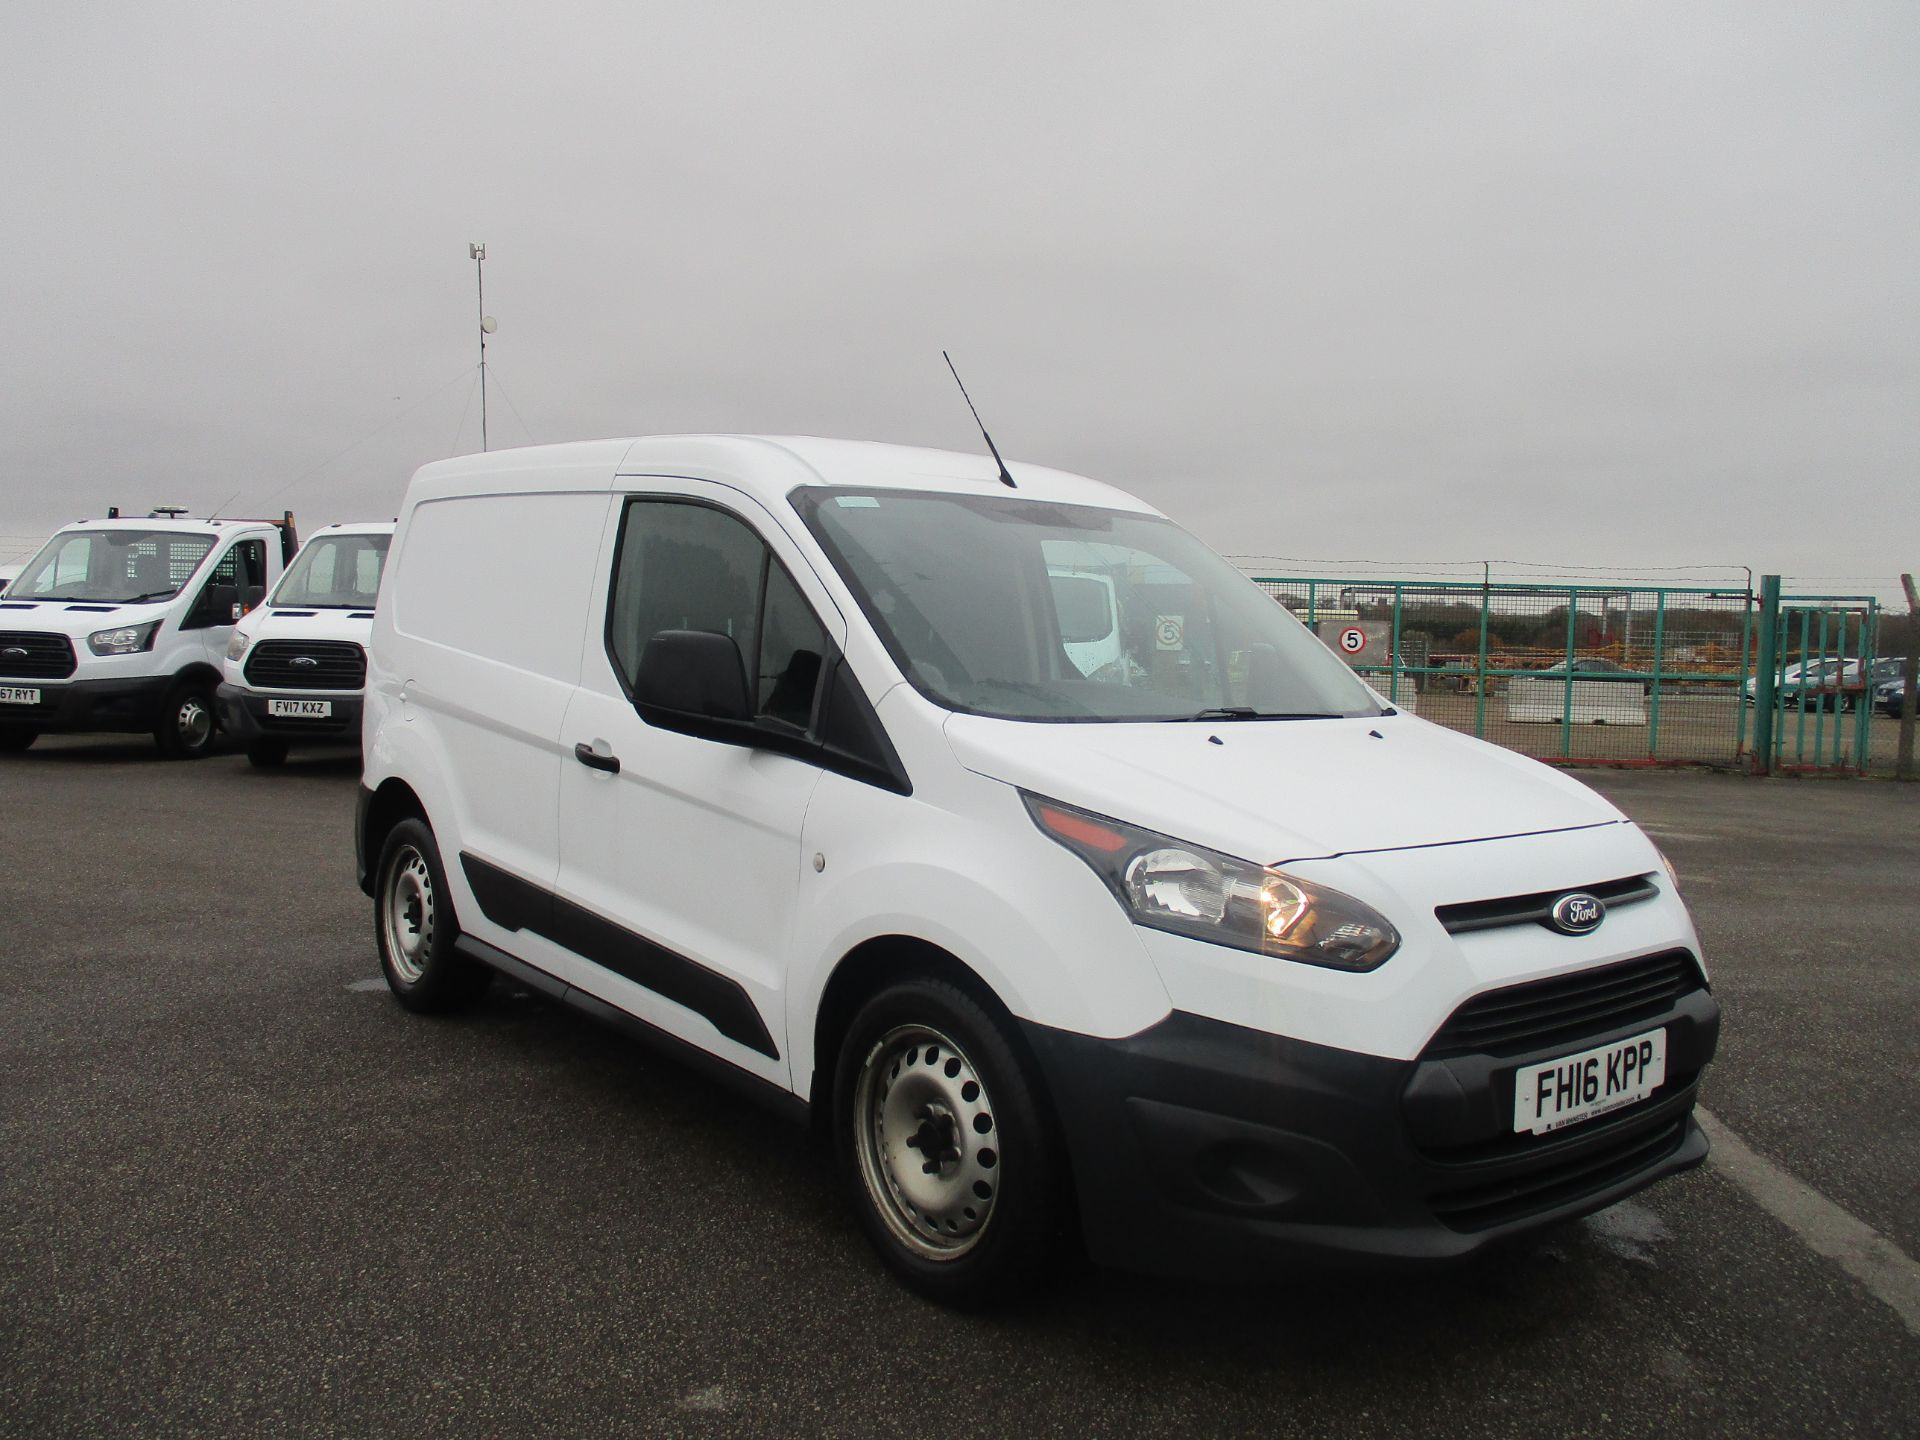 2016 Ford Transit Connect 220 L1 DIESEL 1.5 TDCI 75PS VAN EURO 6 (FH16KPP)